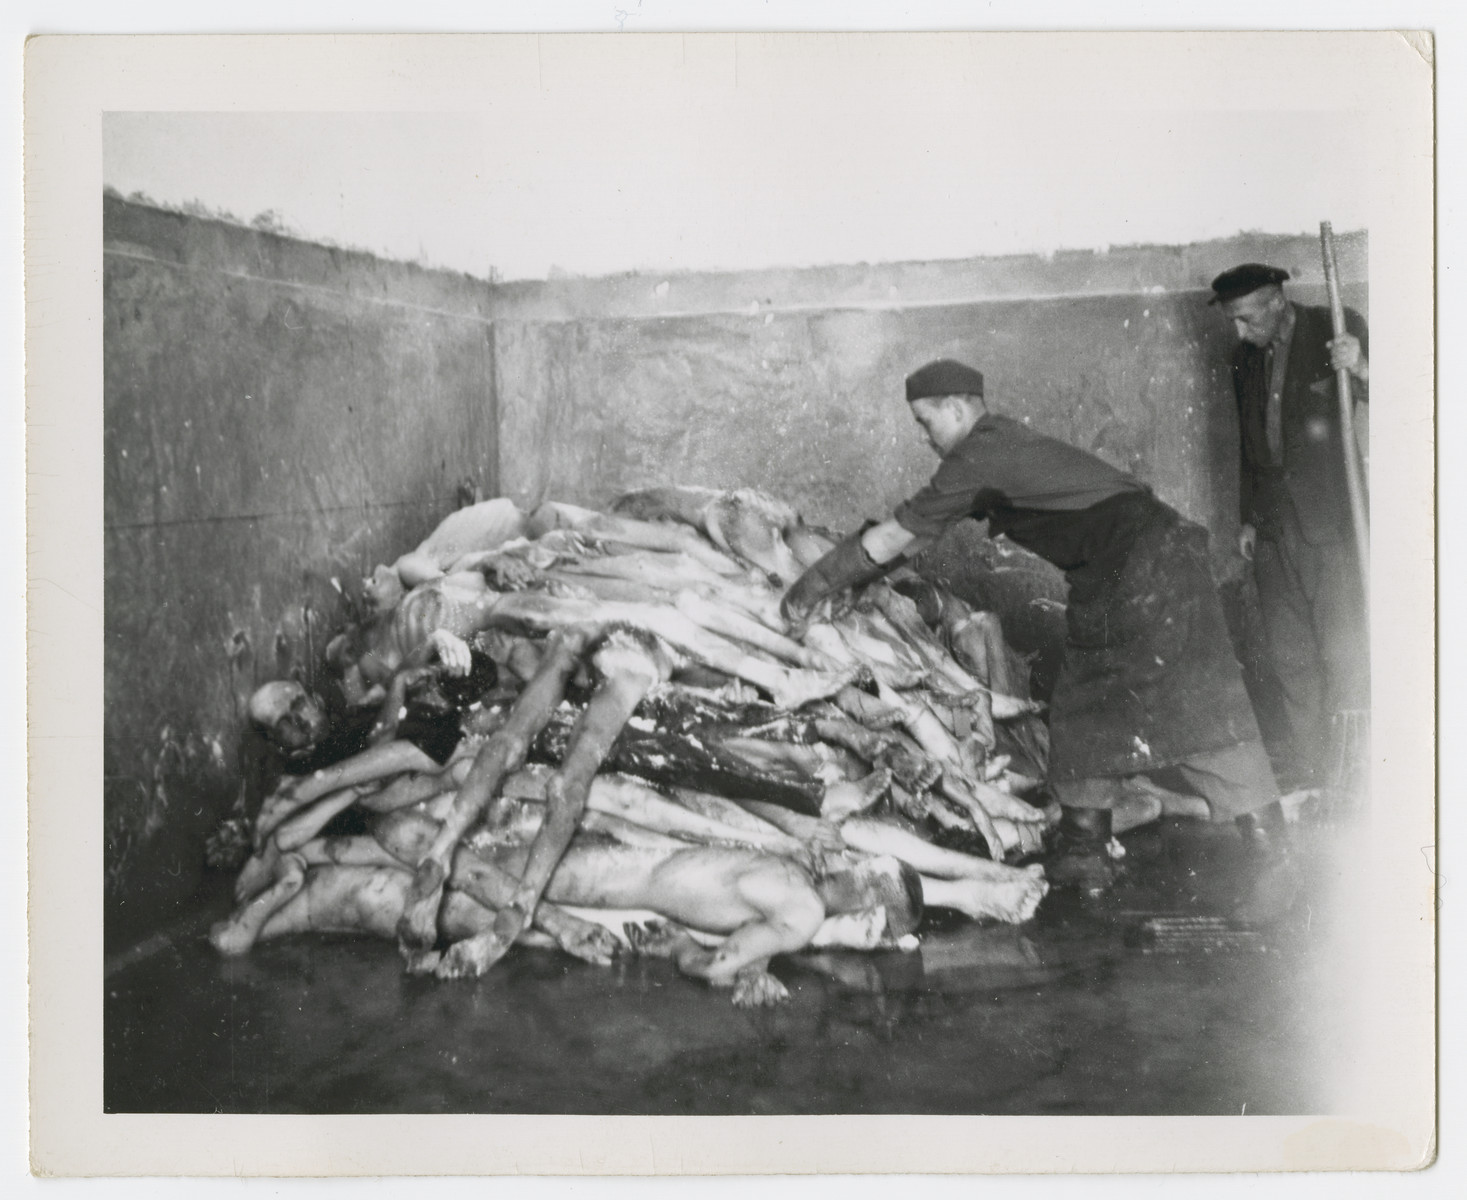 Survivors stack up bodies in the Dachau concentration camp after liberation.